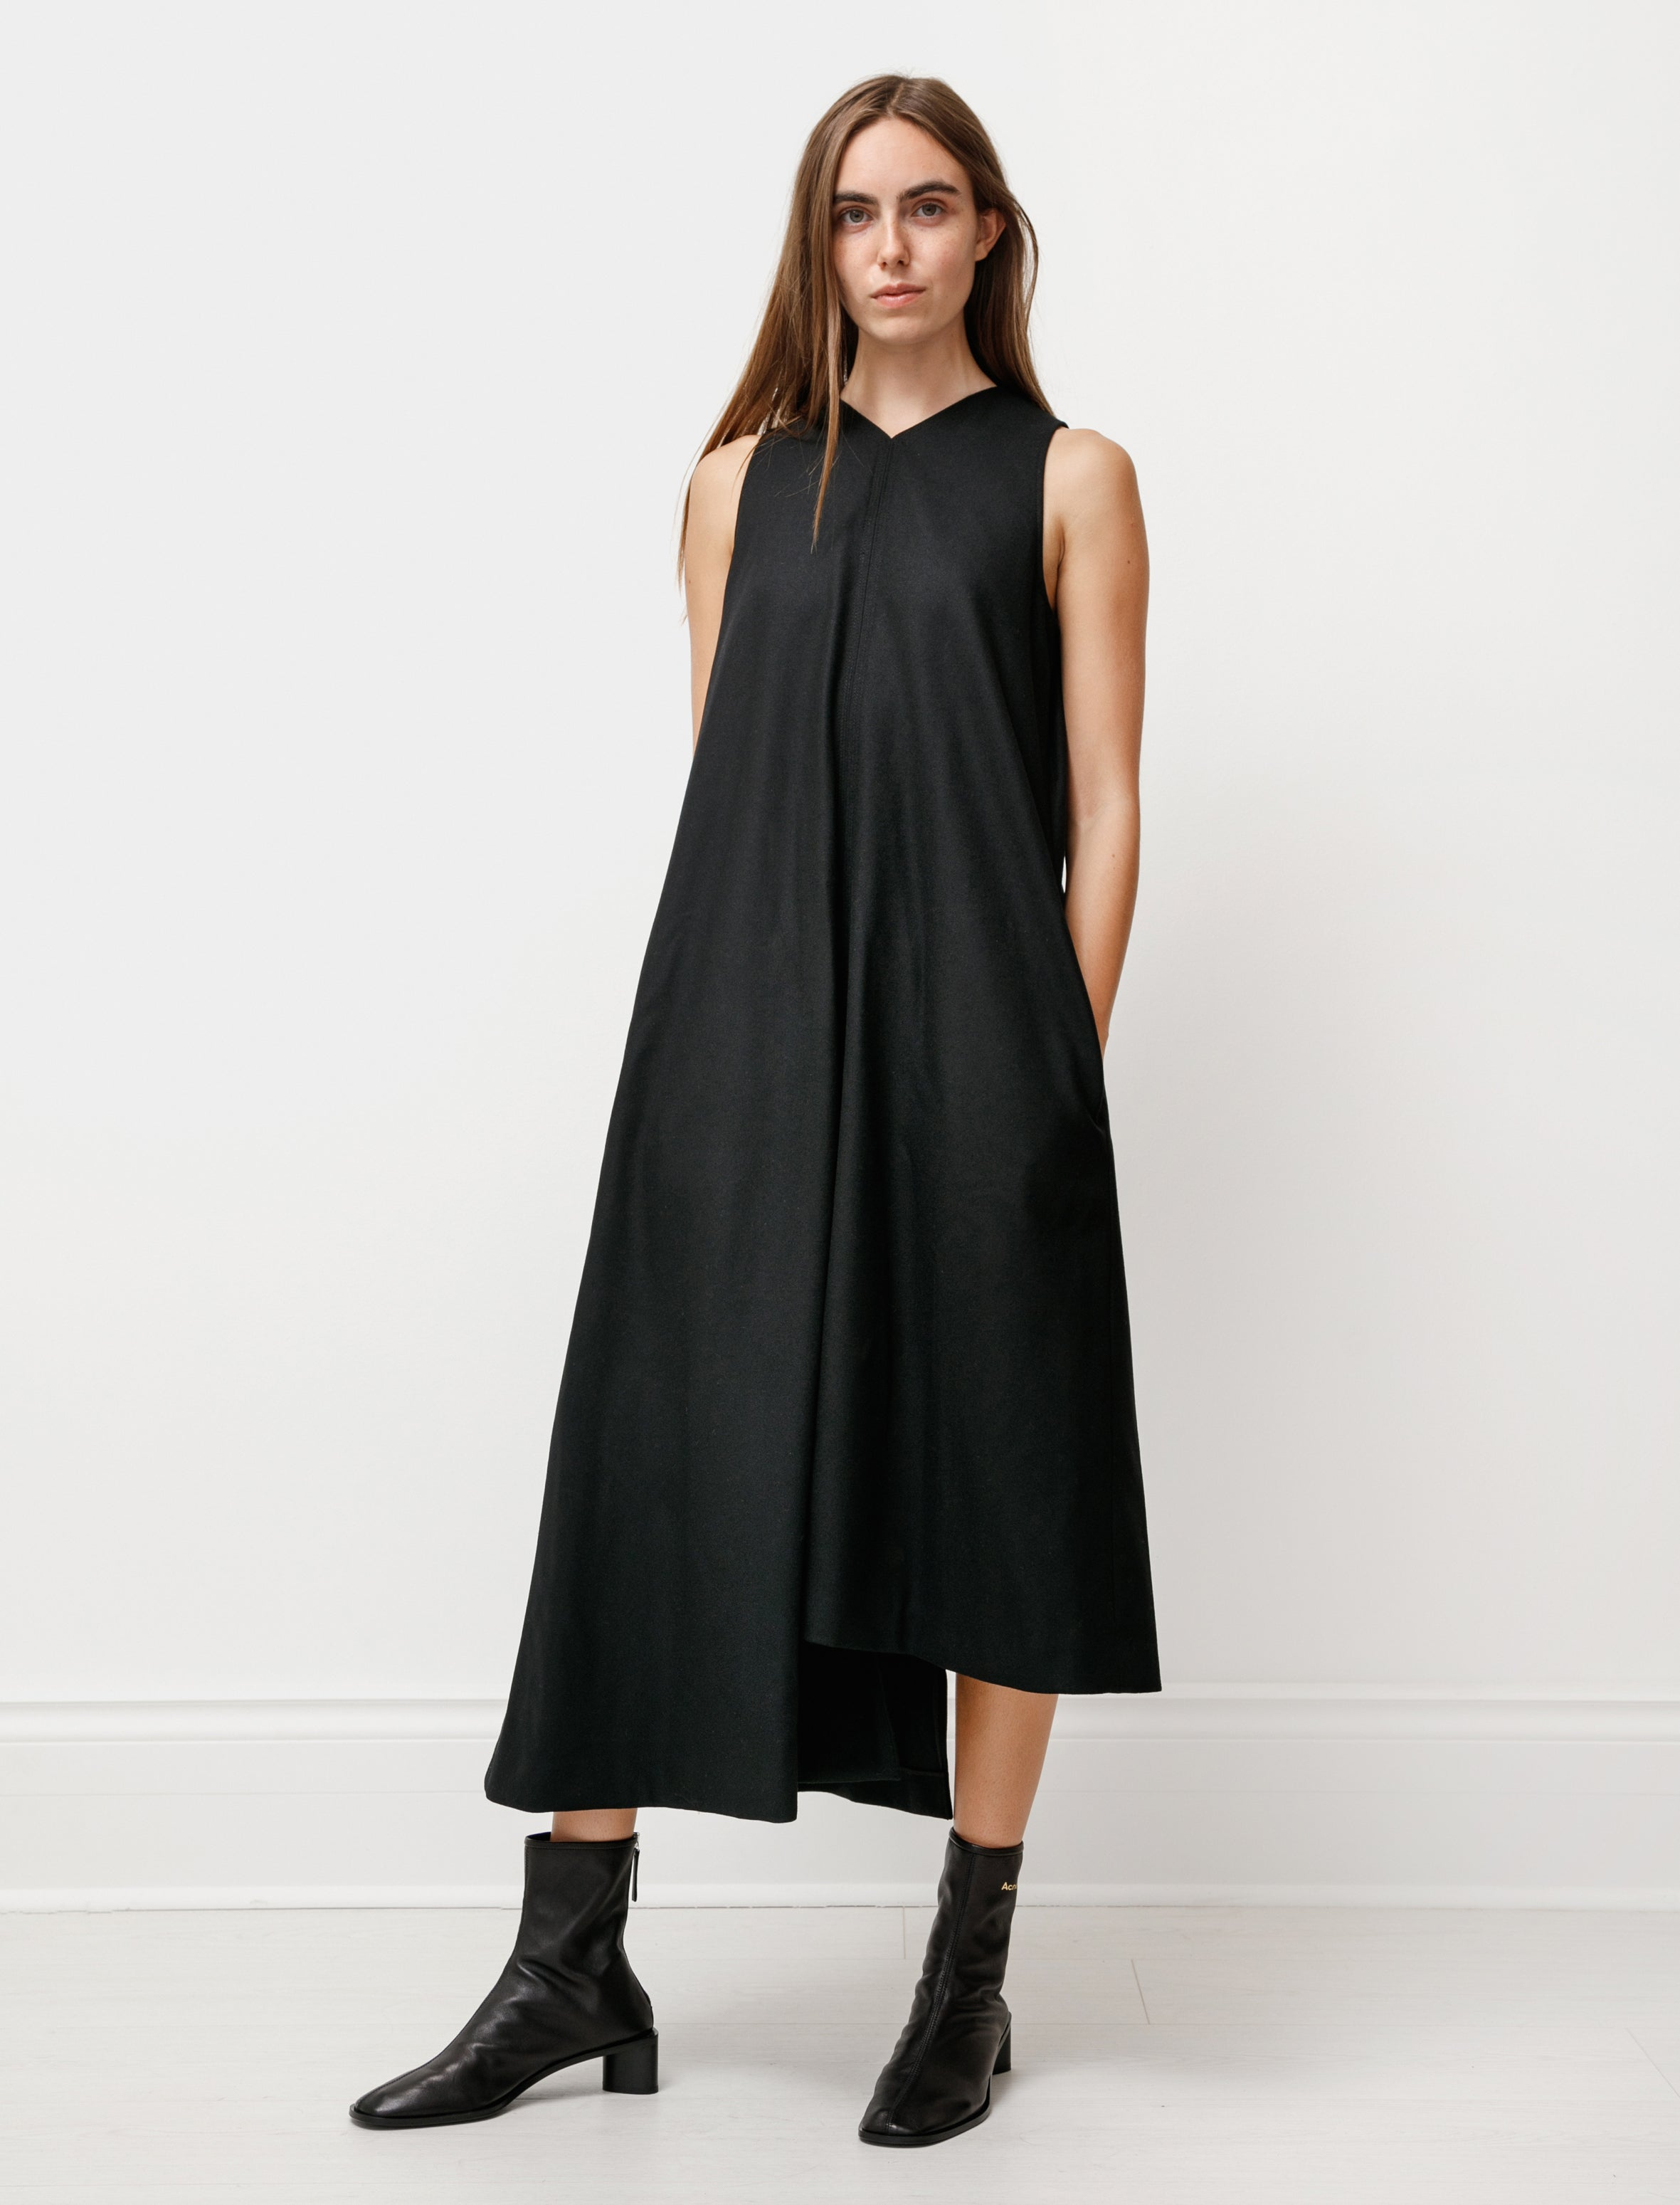 Y's by Yohji Yamamoto Asymmetrical Pressed Wool Dress Black